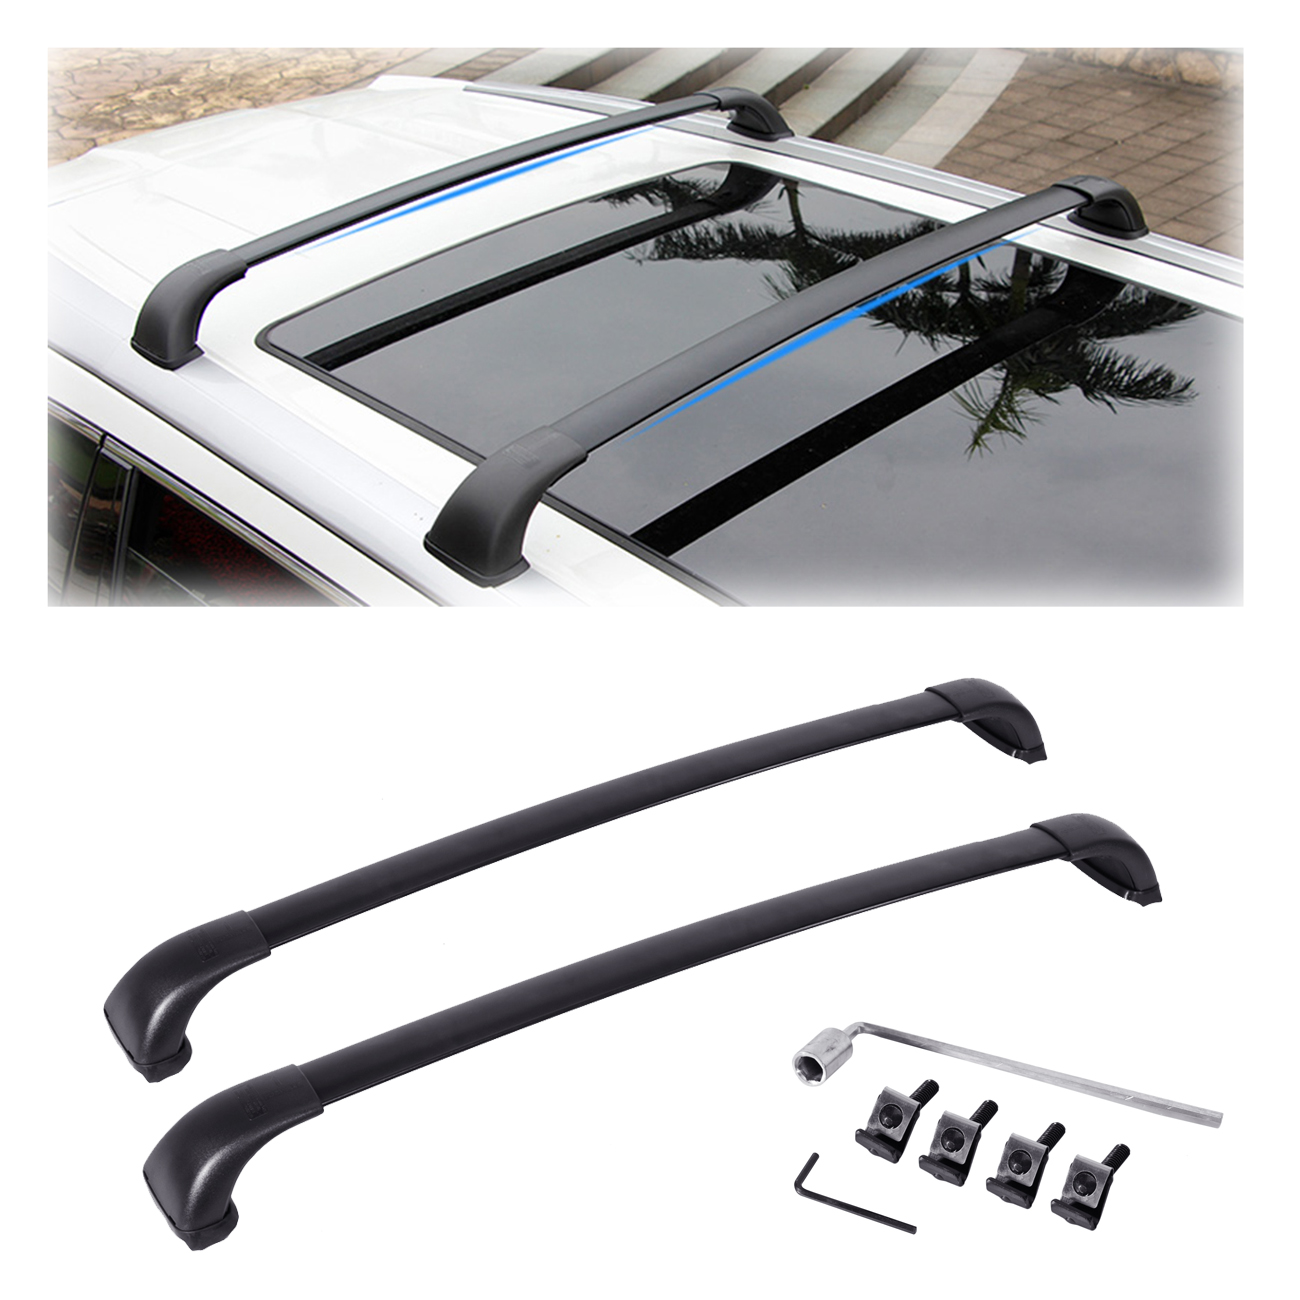 Alavente Aluminum Top Roof Cross Bars Crossbars Luggage Cargo Rackheavy Duty Car Top Carrier For 2014 2017 Toyota Highlander Le2pcs